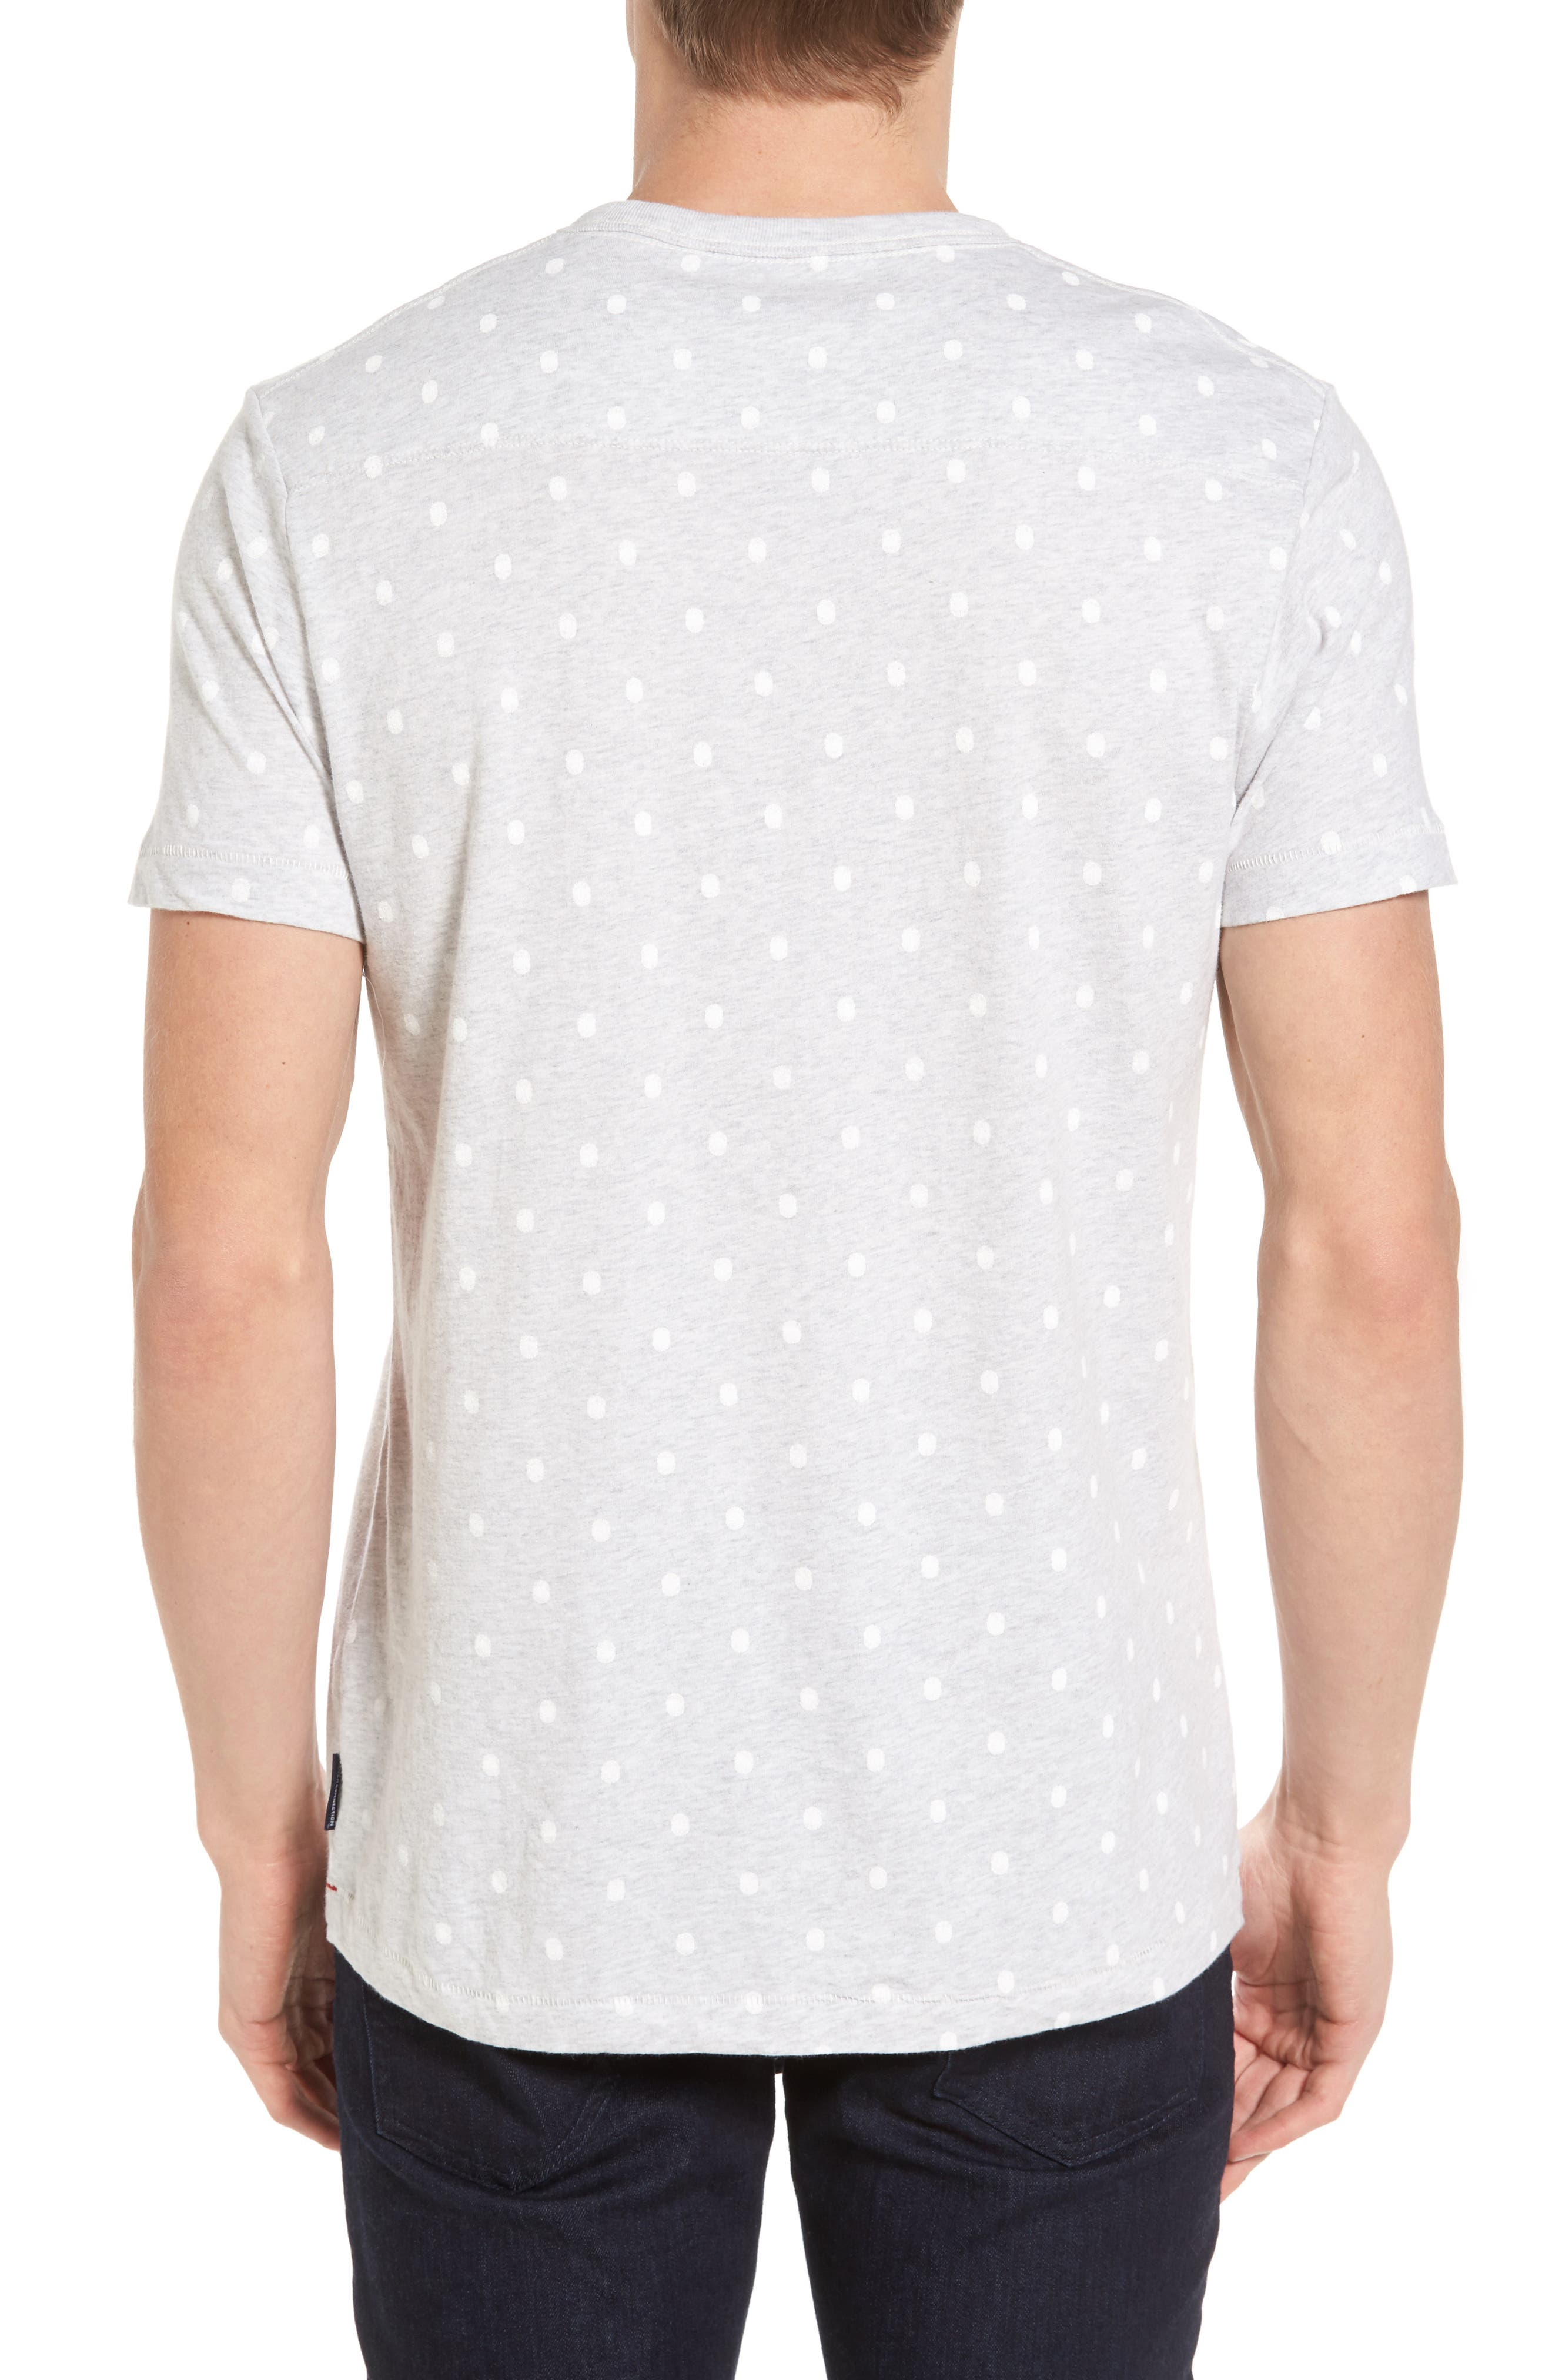 Alternate Image 2  - French Connection Polka Dot T-Shirt